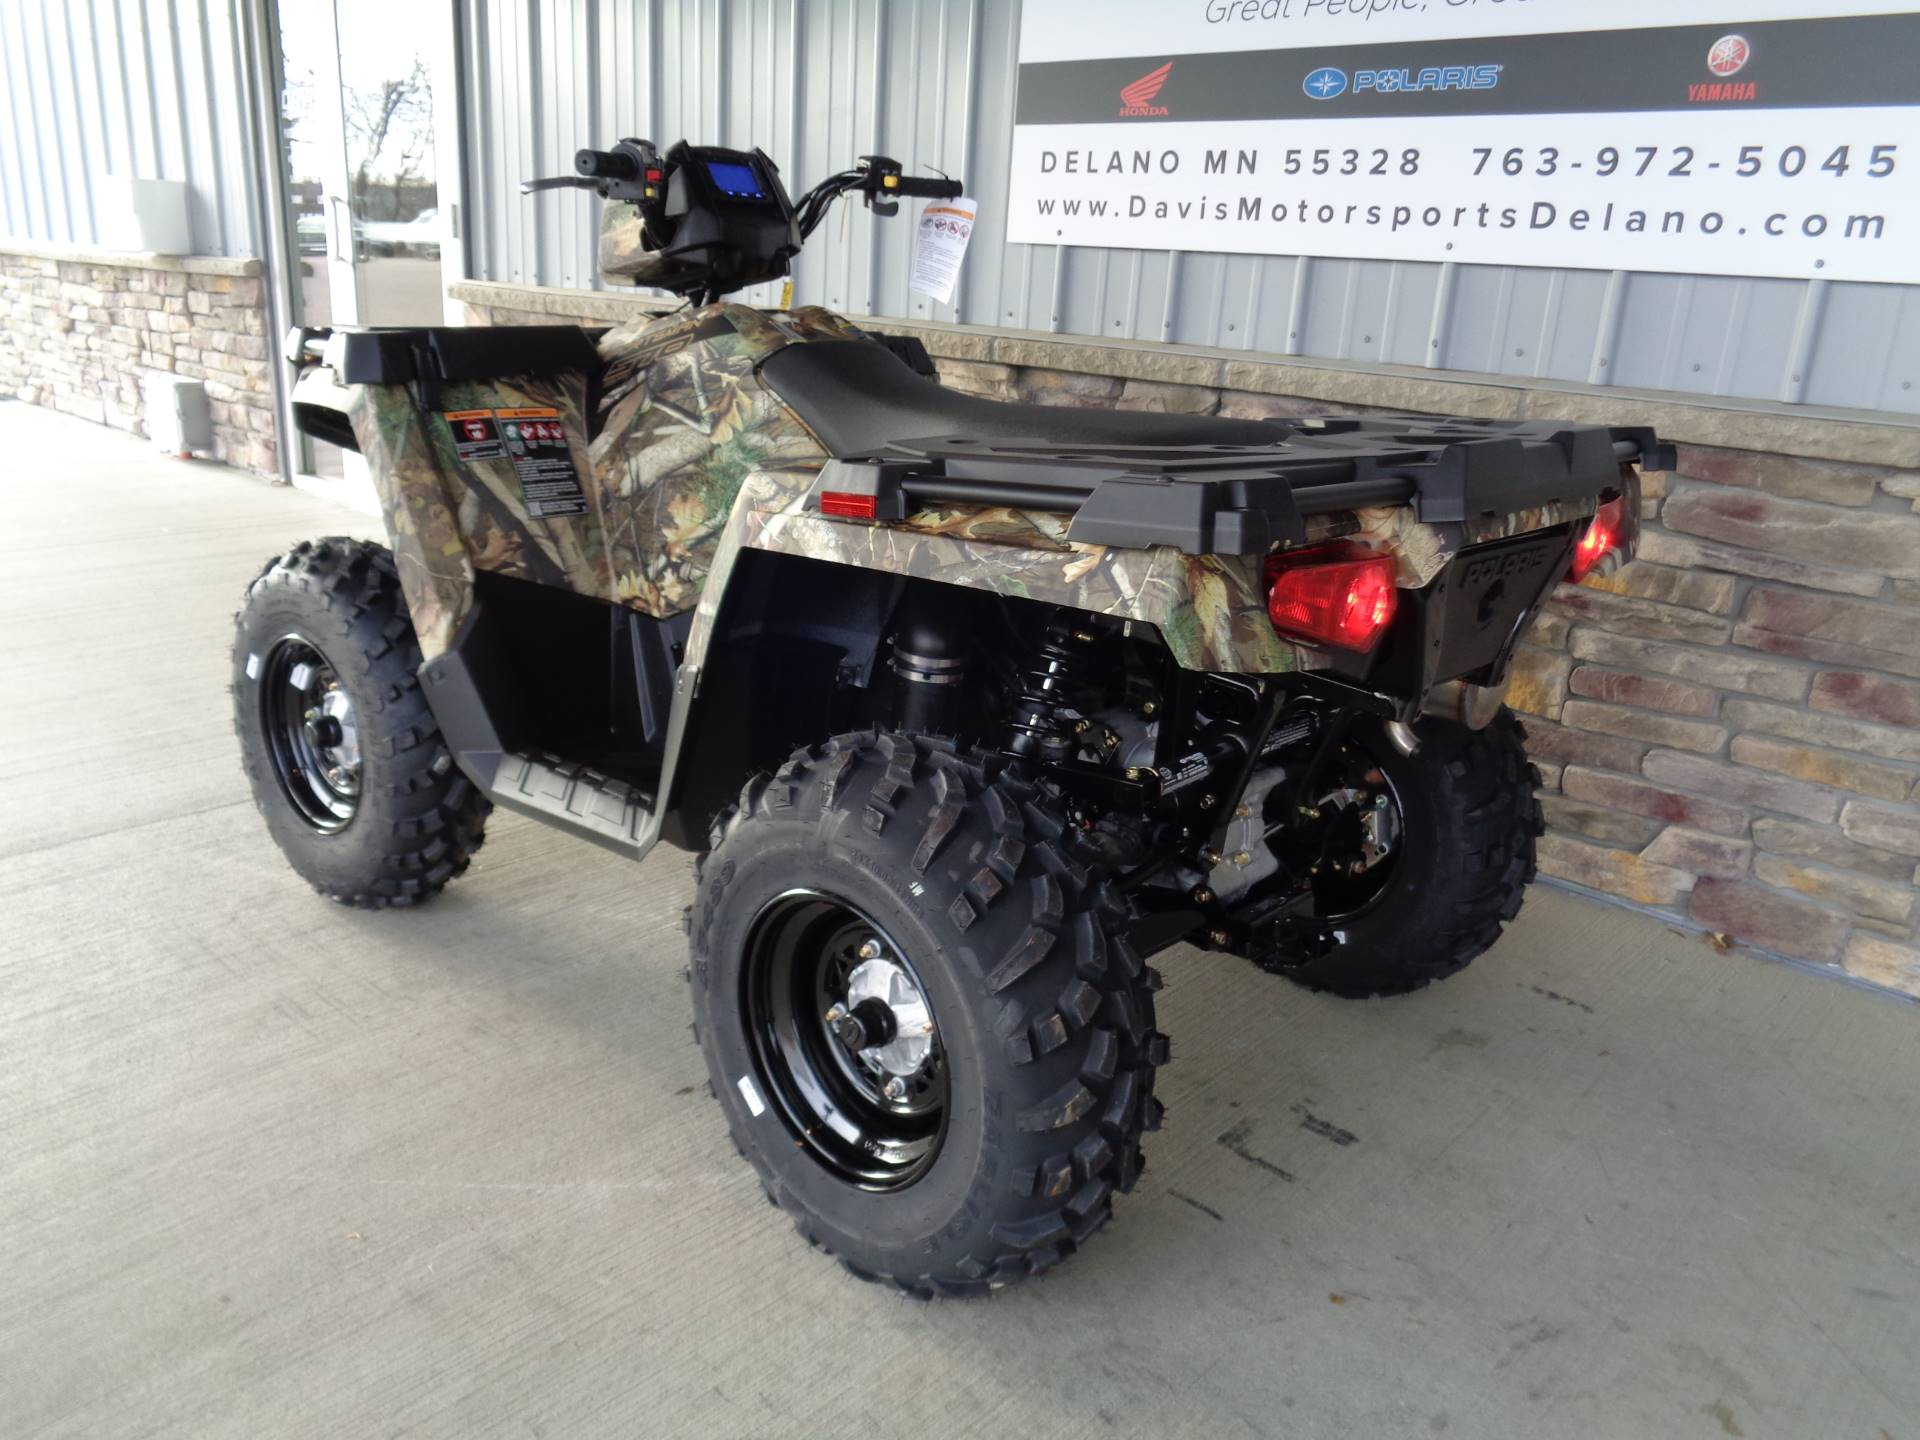 2019 Polaris Sportsman 570 EPS Camo in Delano, Minnesota - Photo 6